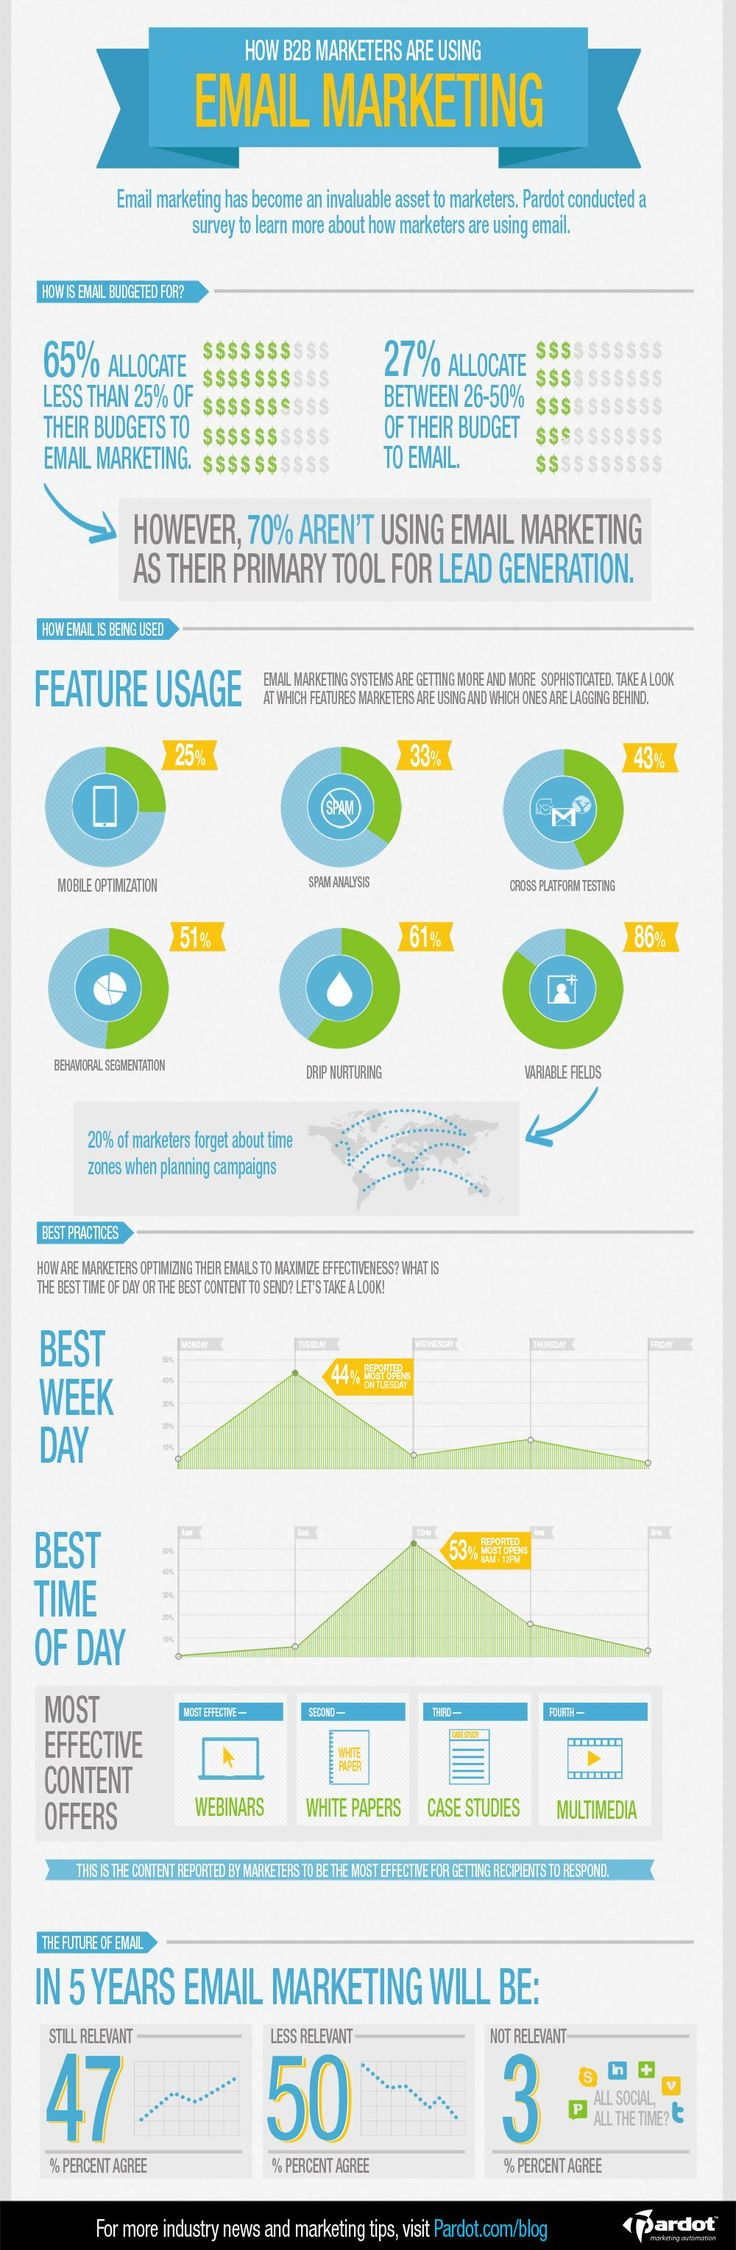 How #B2B marketers are using #email #marketing